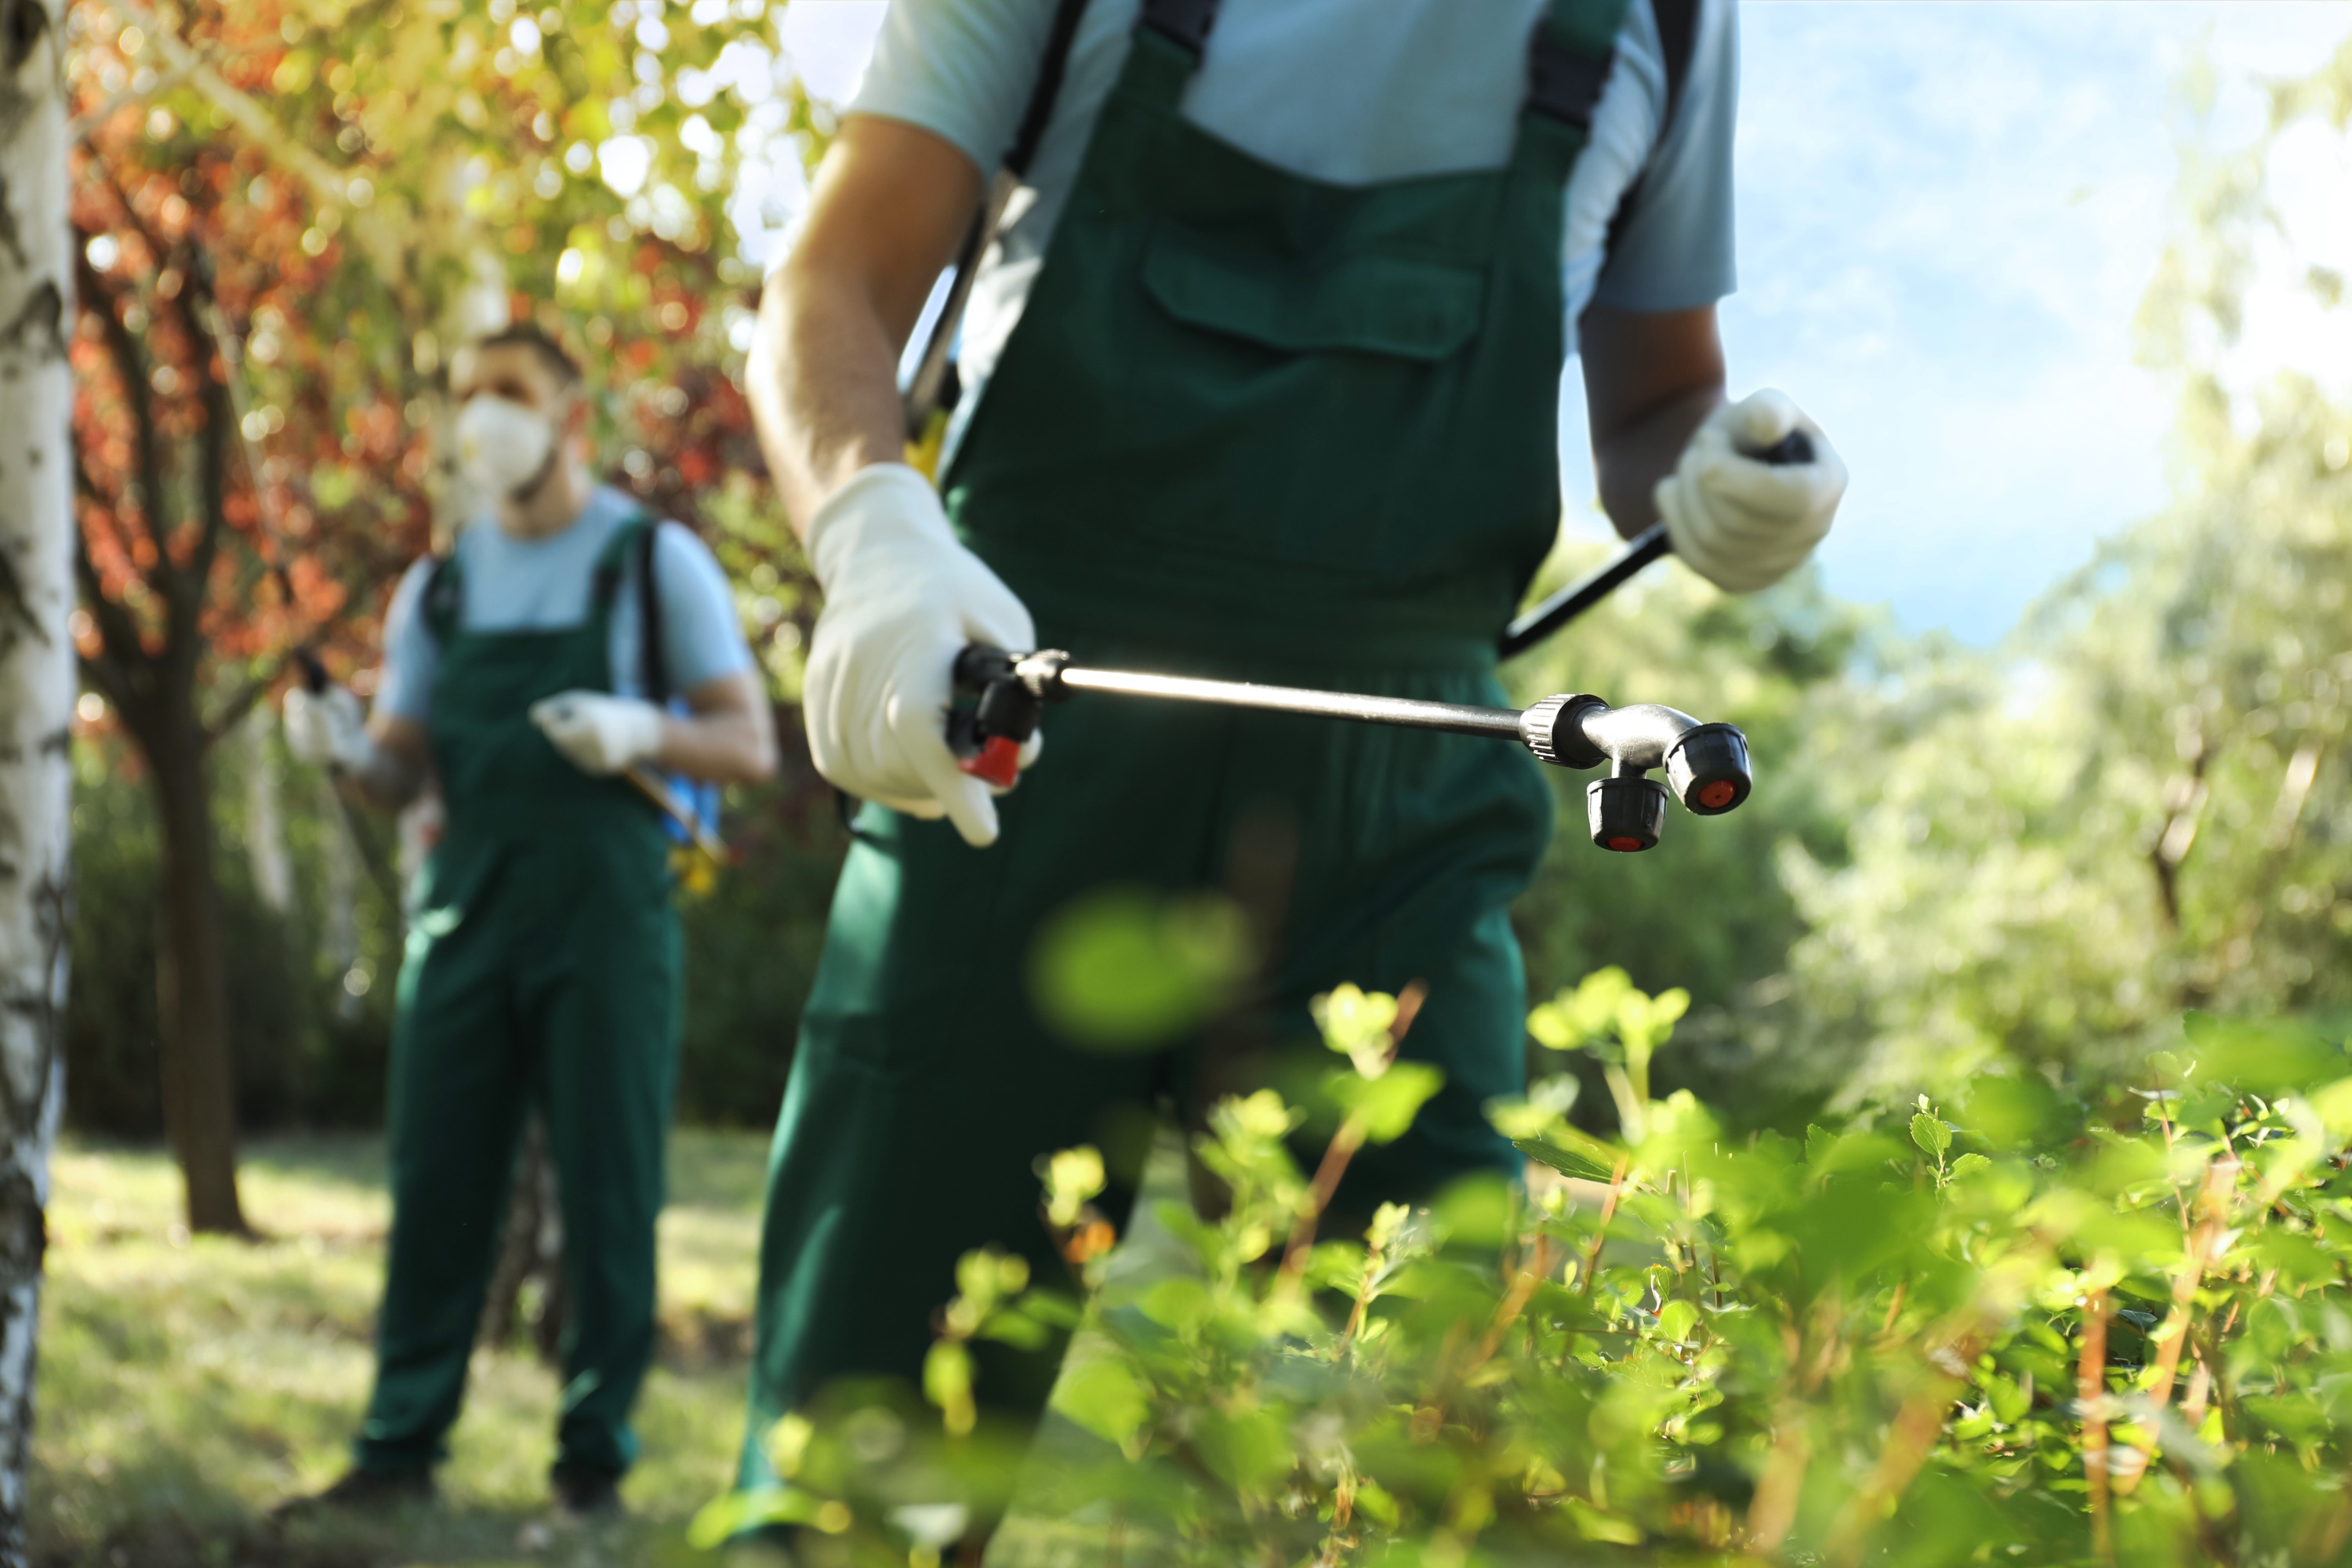 A pest control specialist wearing dark green overalls uses a pest control wand to spray solution on green bushes.